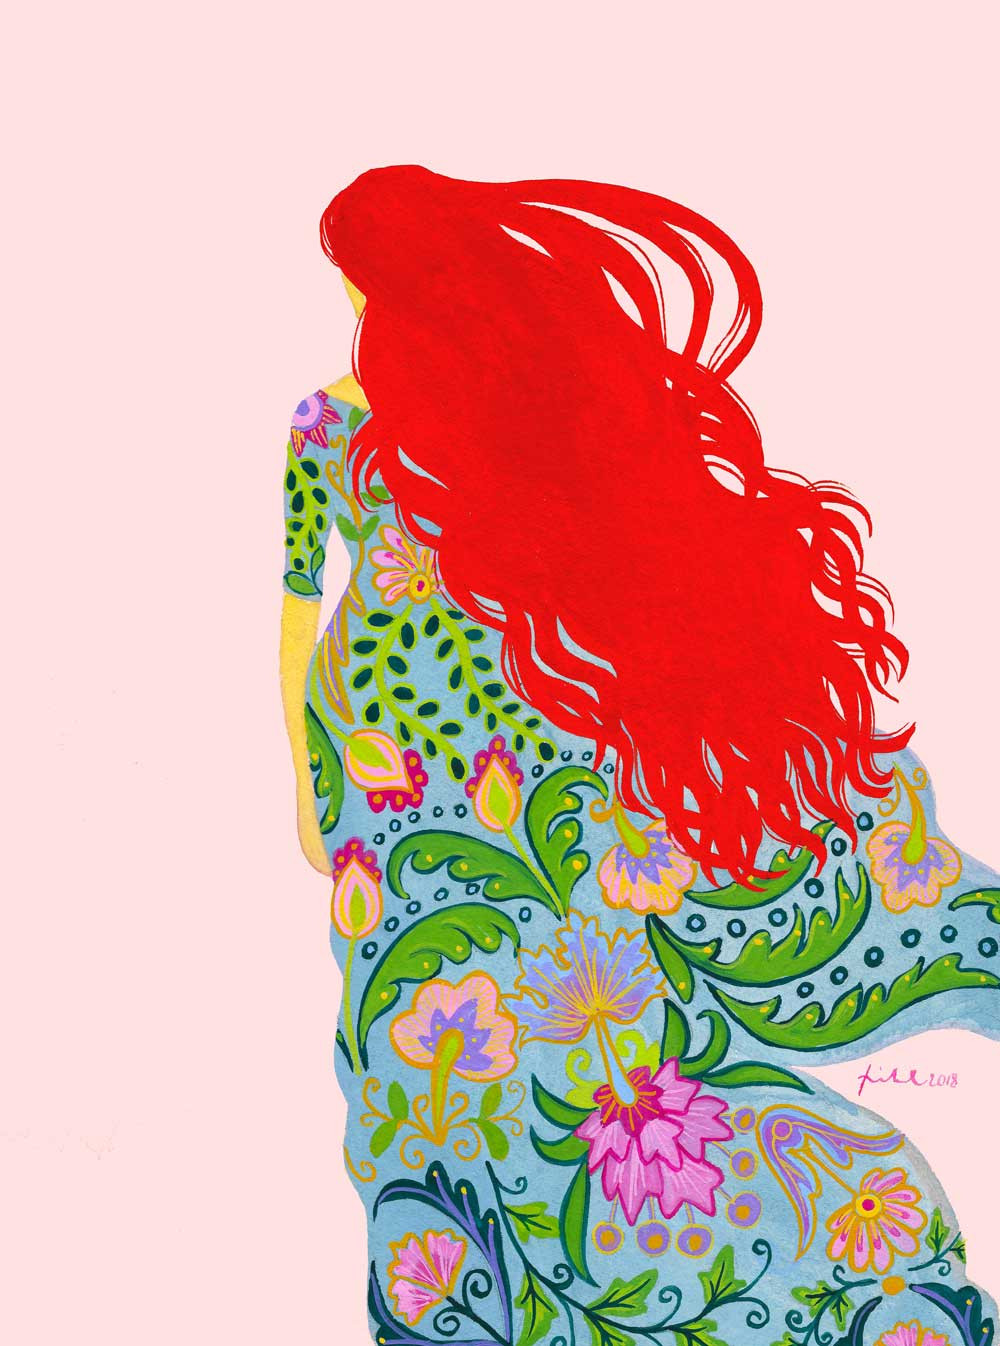 An illustration of a woman with a red hair and billowy blue floral dress standing against a flat pink background